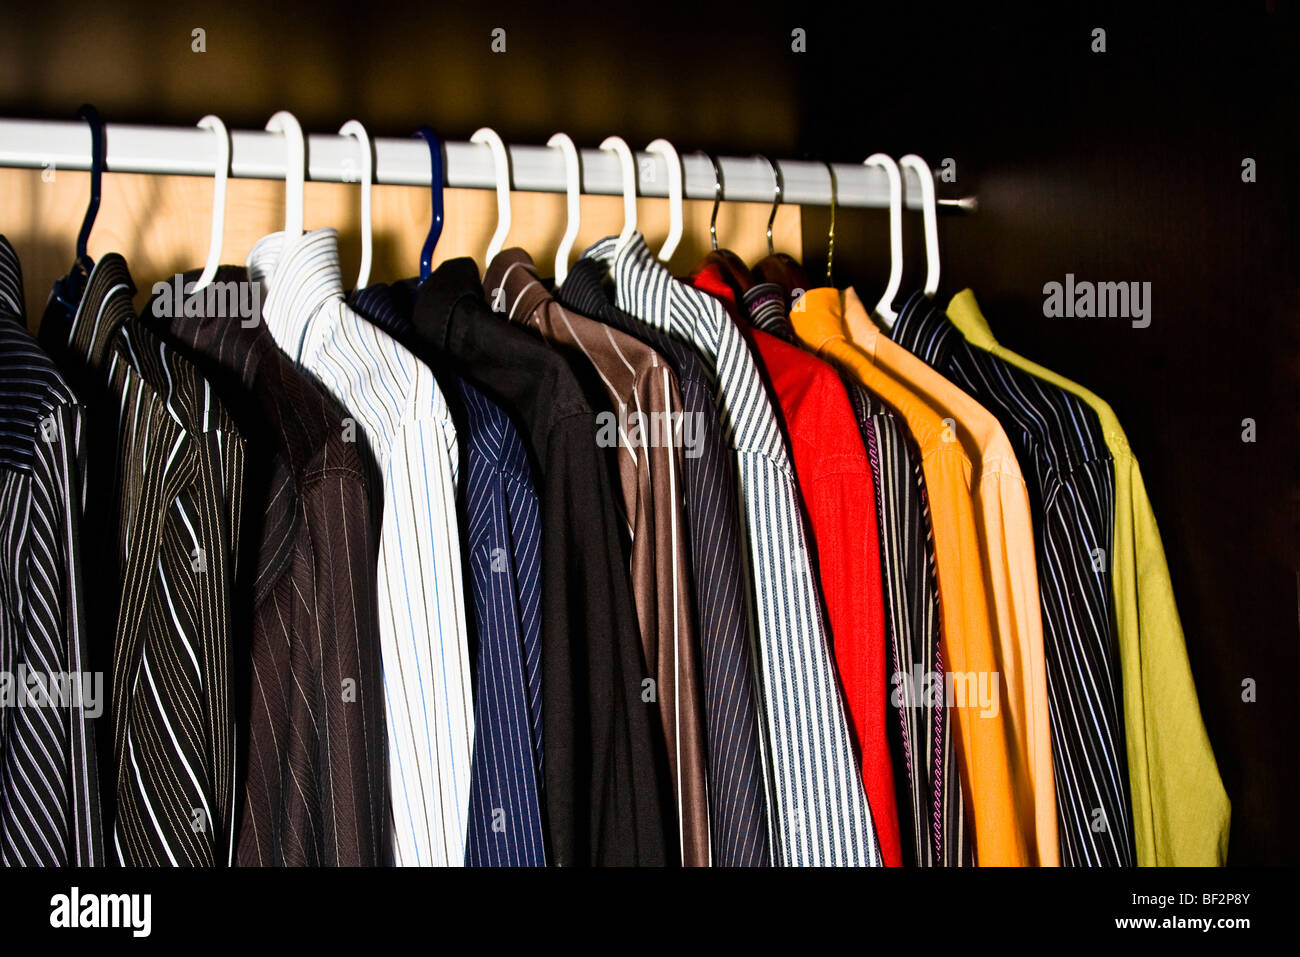 Clothes hanging in a row - Stock Image